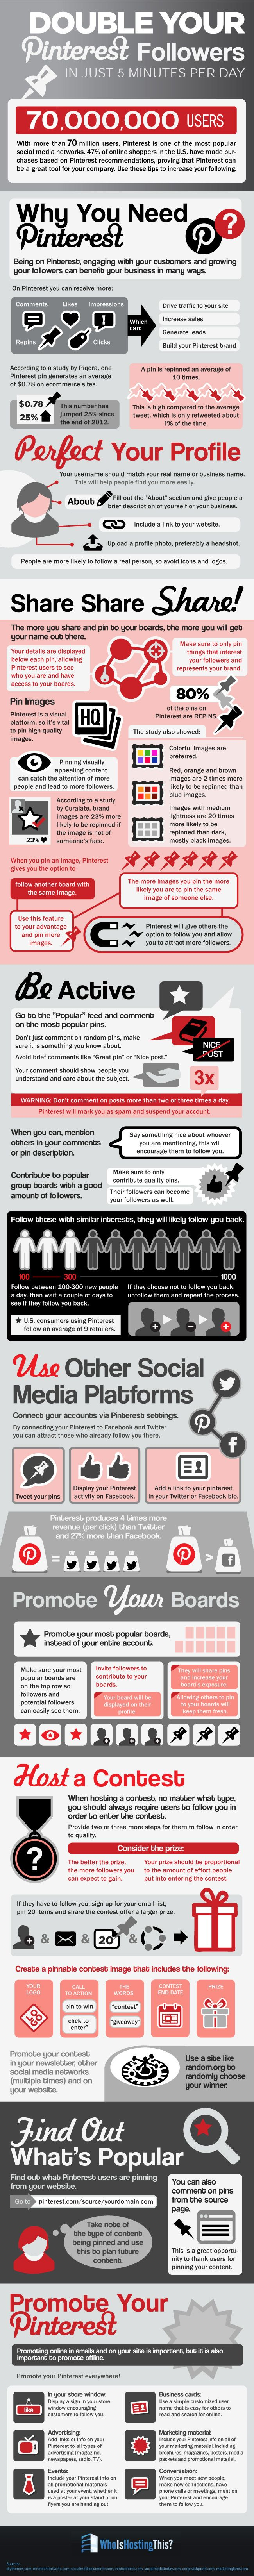 Double Your Pinterest Followers In Five Minutes Per Day Infographic